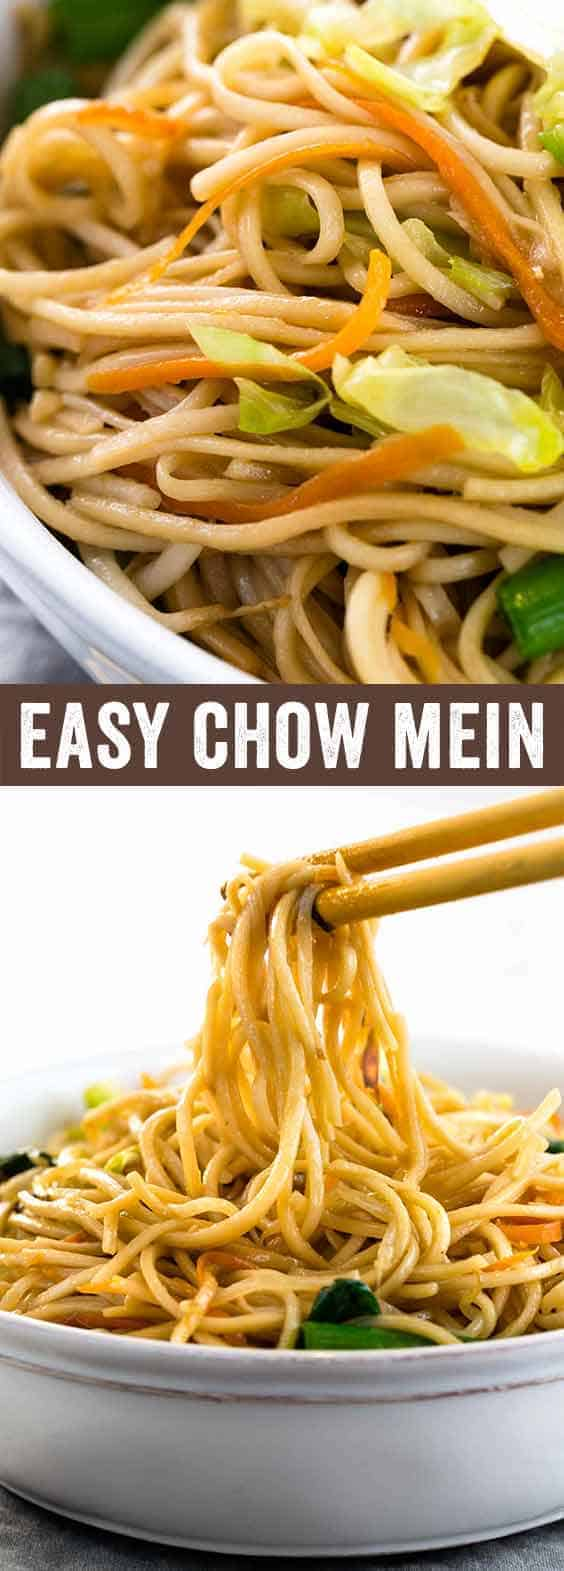 Chow mein recipe jessica gavin chinese chow mein noodles tossed in an authentic savory sauce the noodles are stir forumfinder Image collections